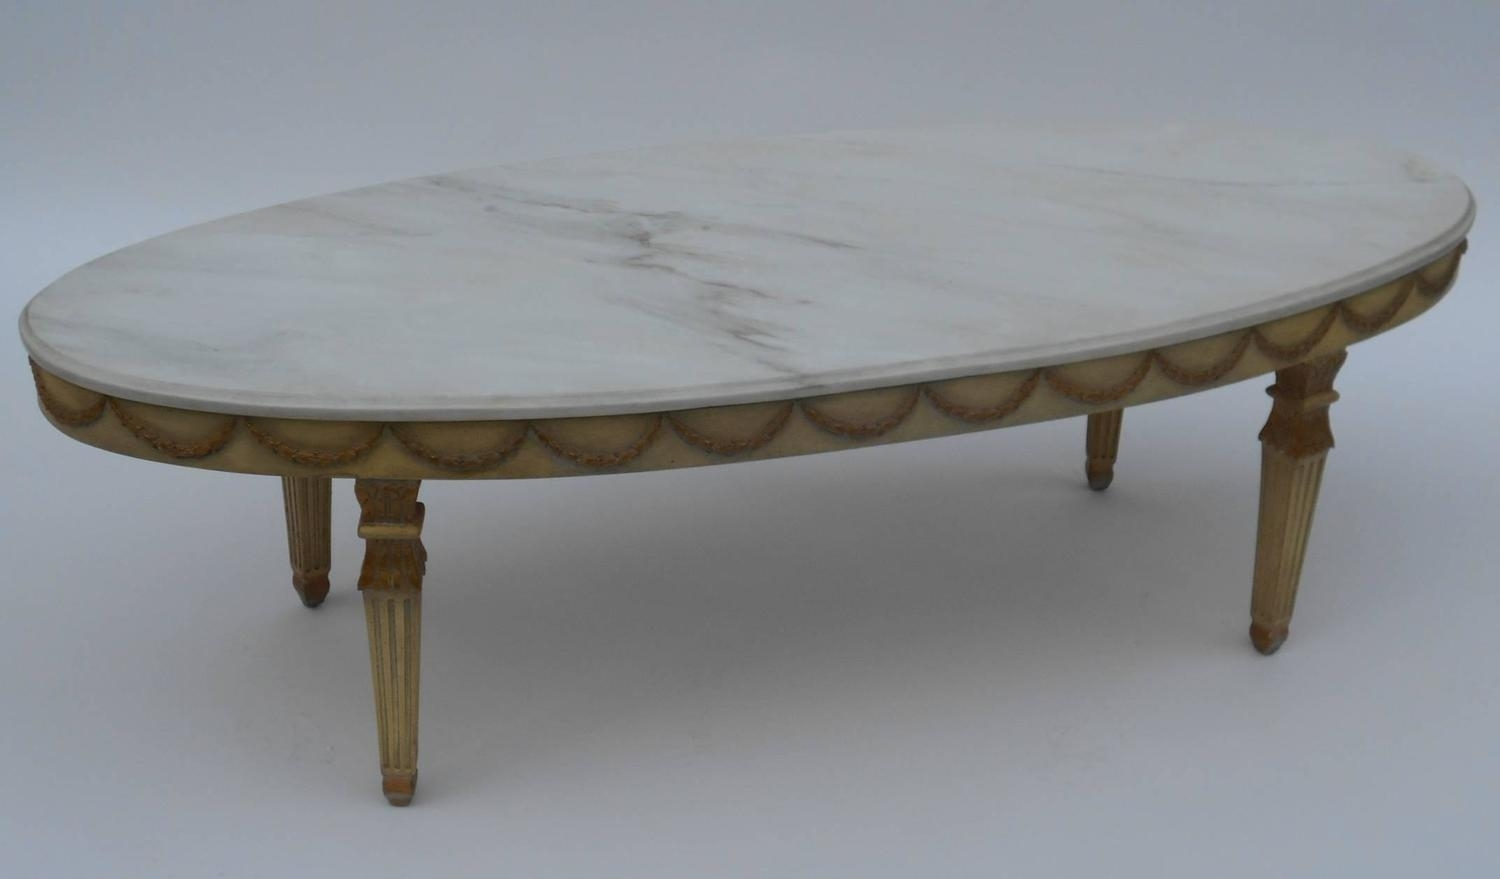 Italian Marble Top Coffee Table At 1Stdibs Intended For Smart Round Marble Brass Coffee Tables (View 16 of 30)